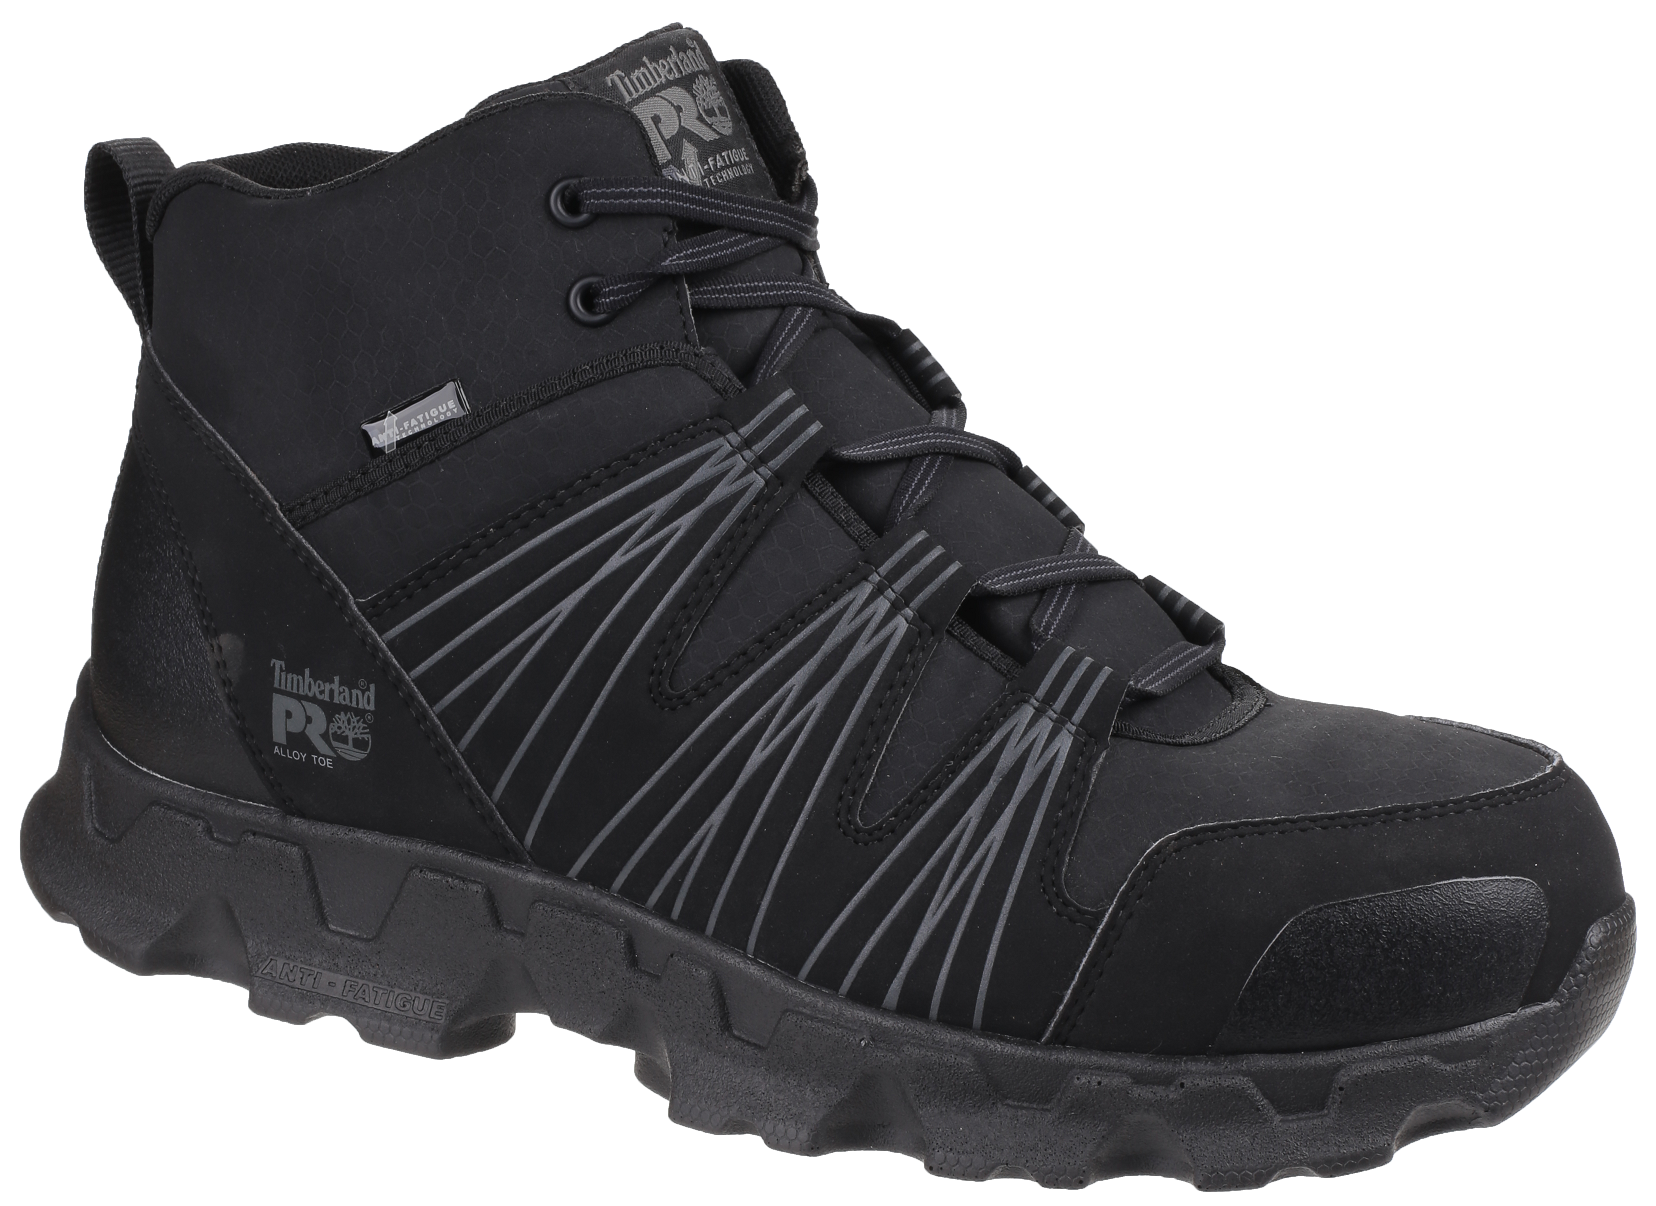 Timberland Pro Powertrain Mid Safety Boots The Safety Shack